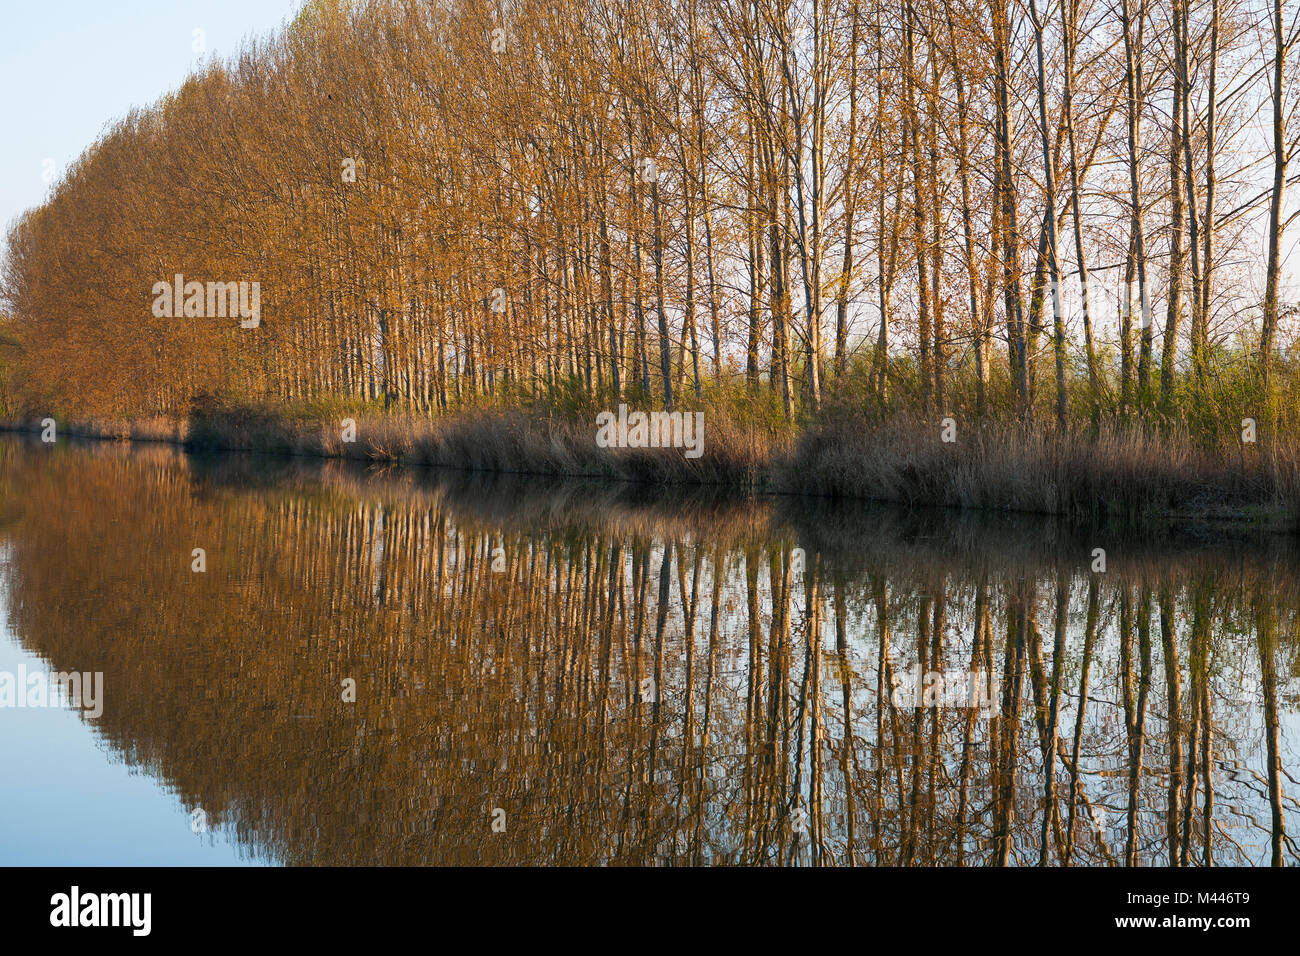 Black Poplars (Populus) with water reflections,Herbslebener Teiche nature reserve,Thuringia,Germany - Stock Image